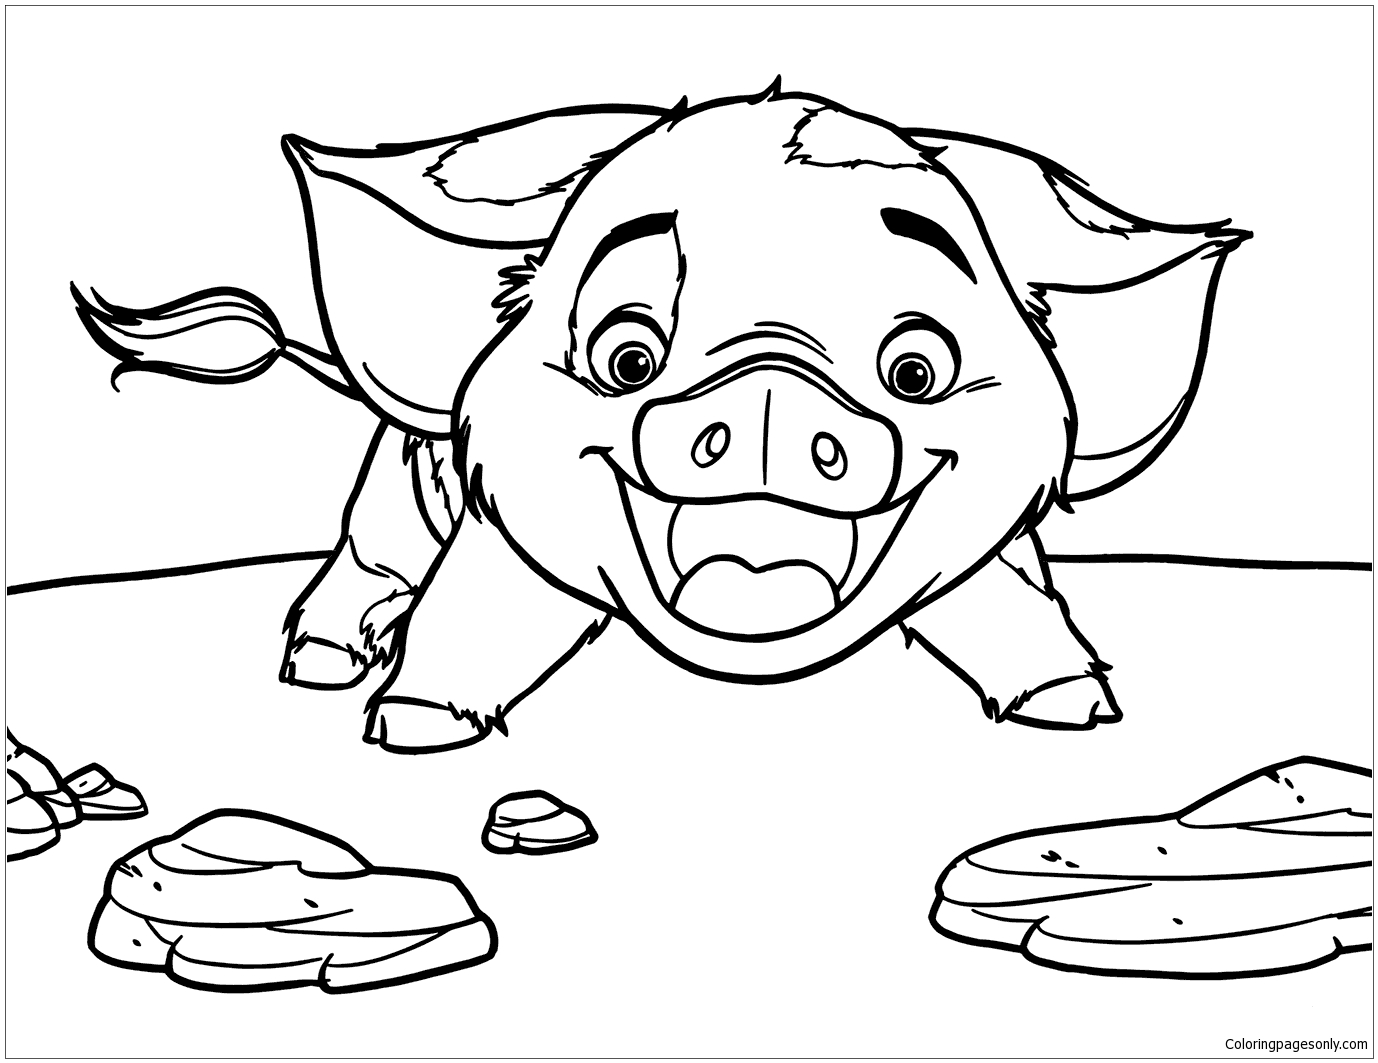 Pua Pig From Moana 5 Coloring Pages